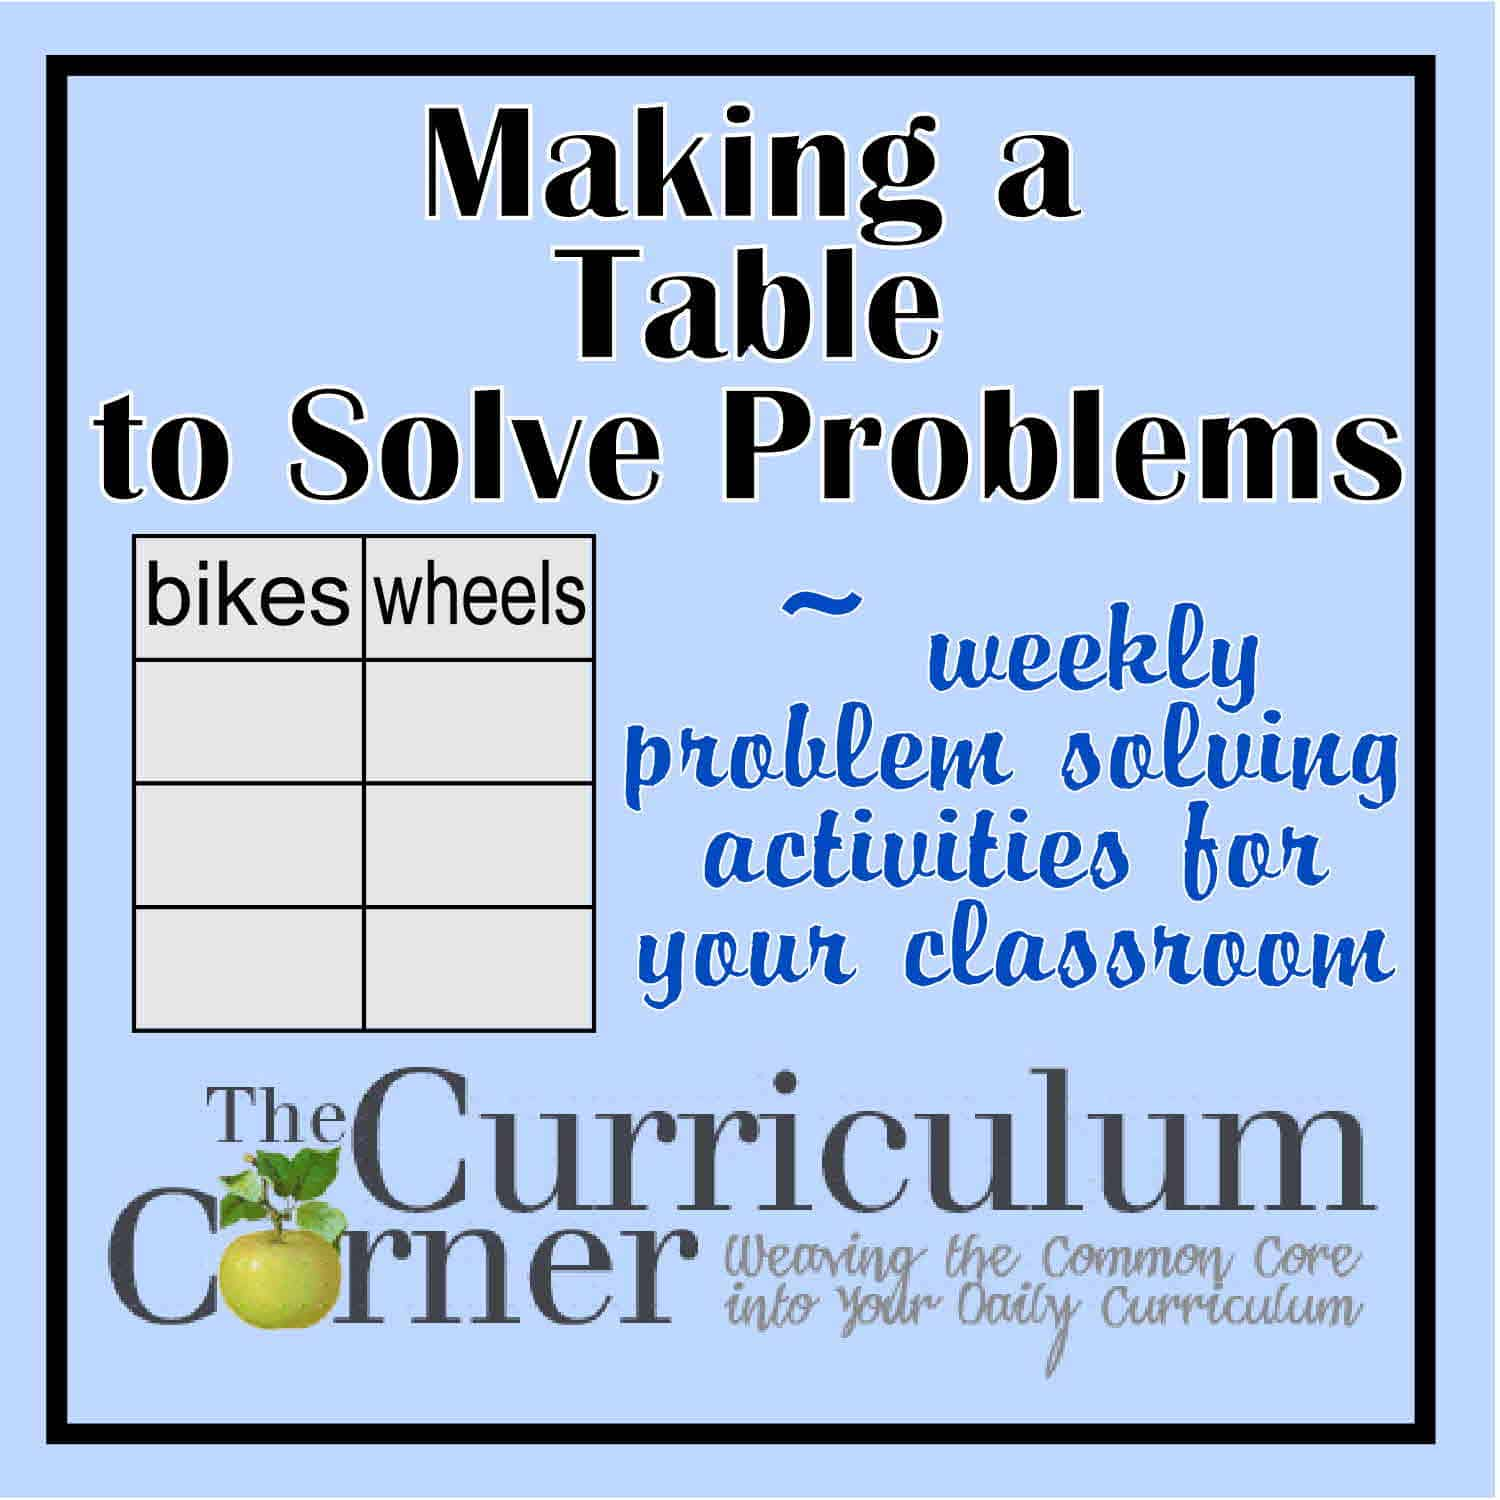 Making a Table to Solve Problems